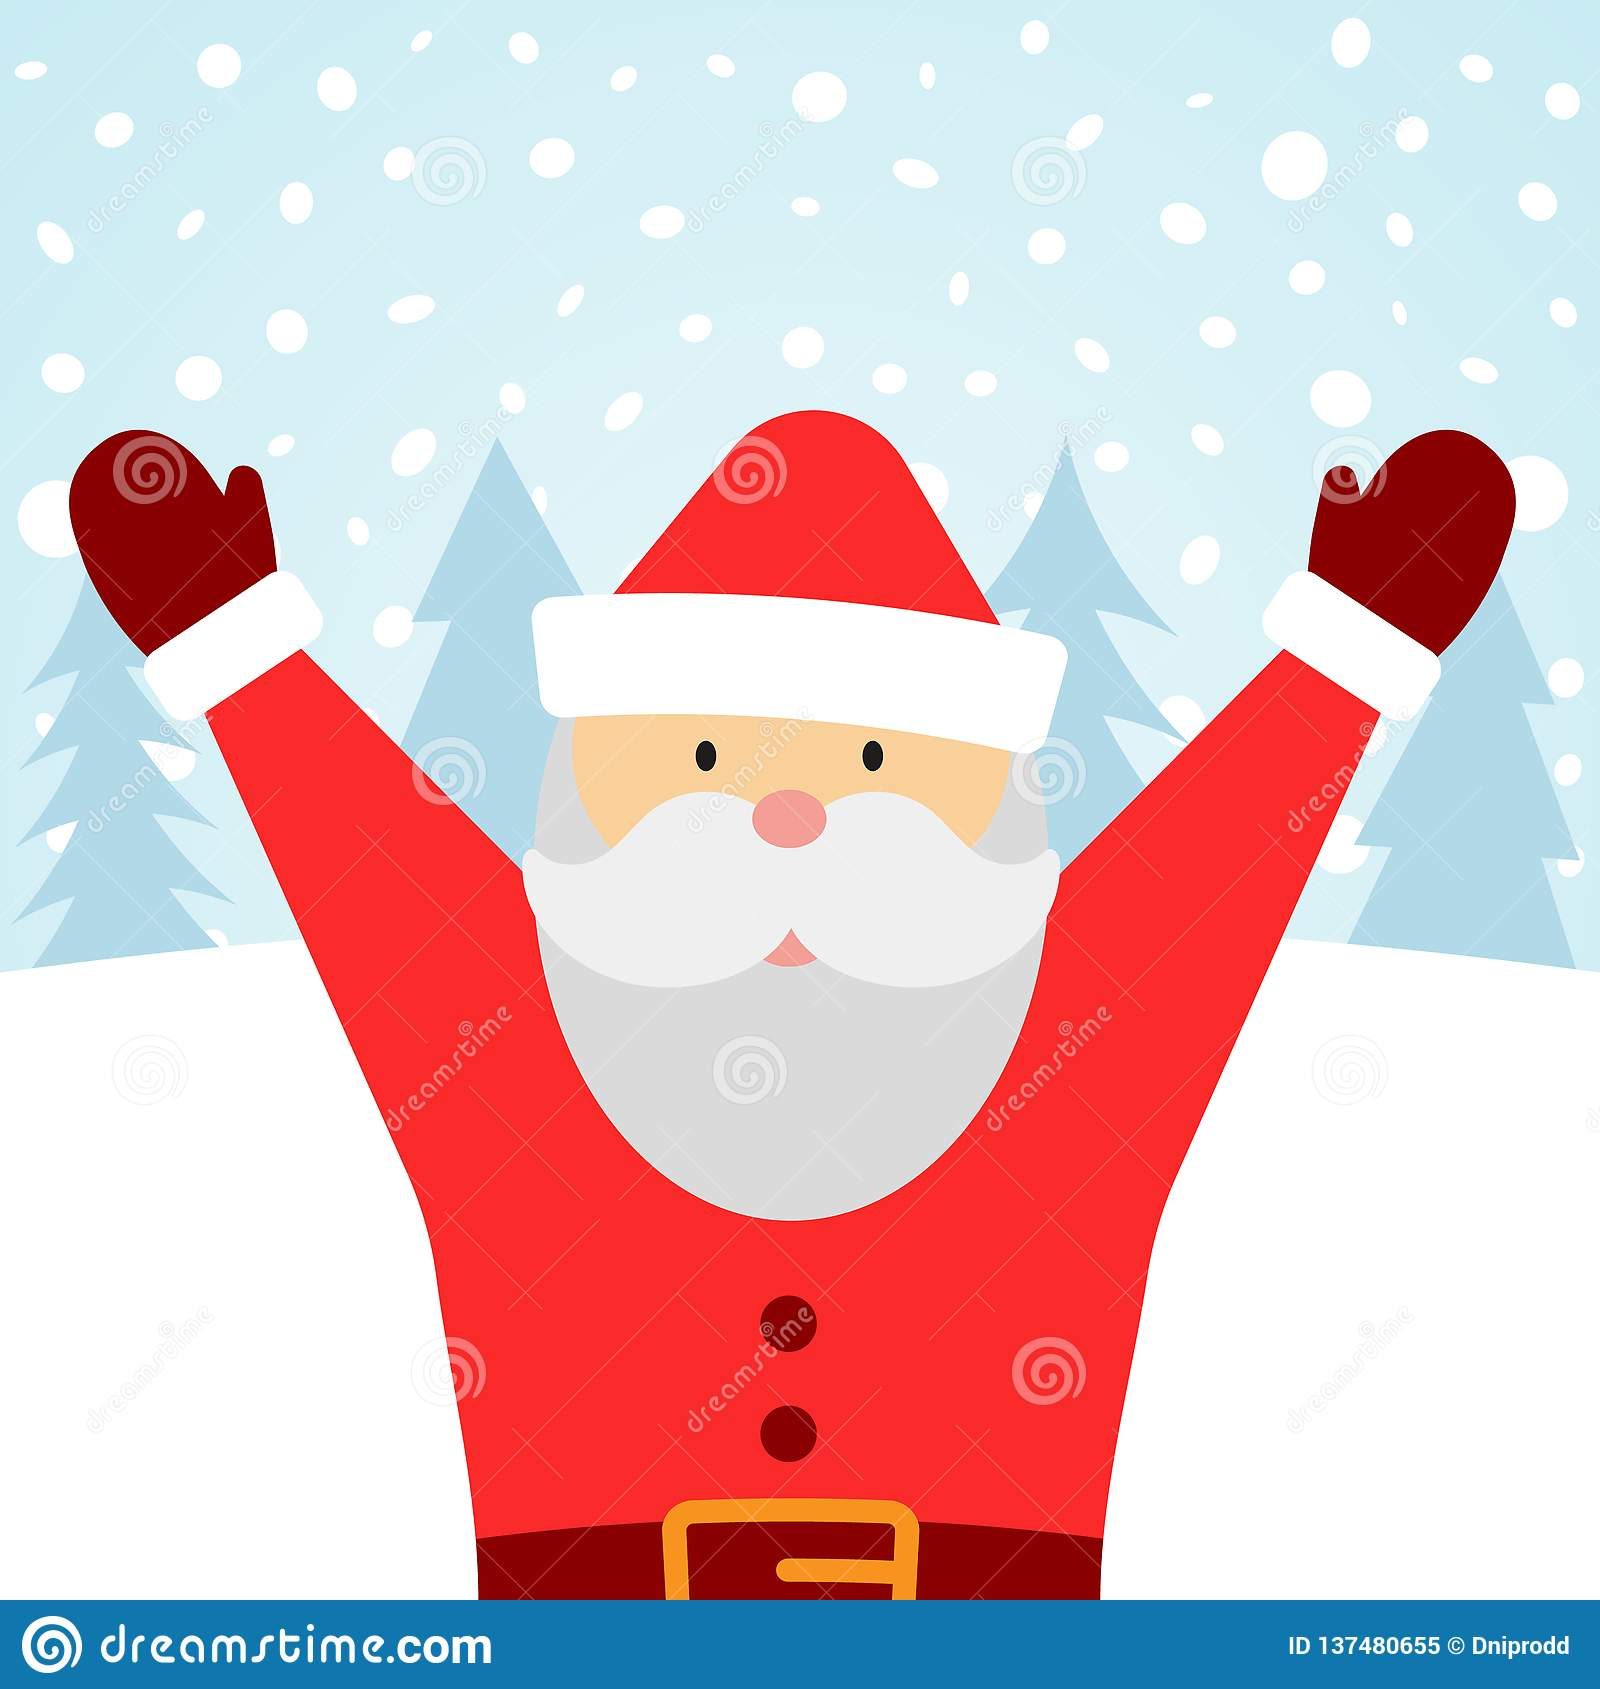 Greeting card with Santa Claus and falling snow. Merry Christmas background. Vector illustration royalty free stock photo